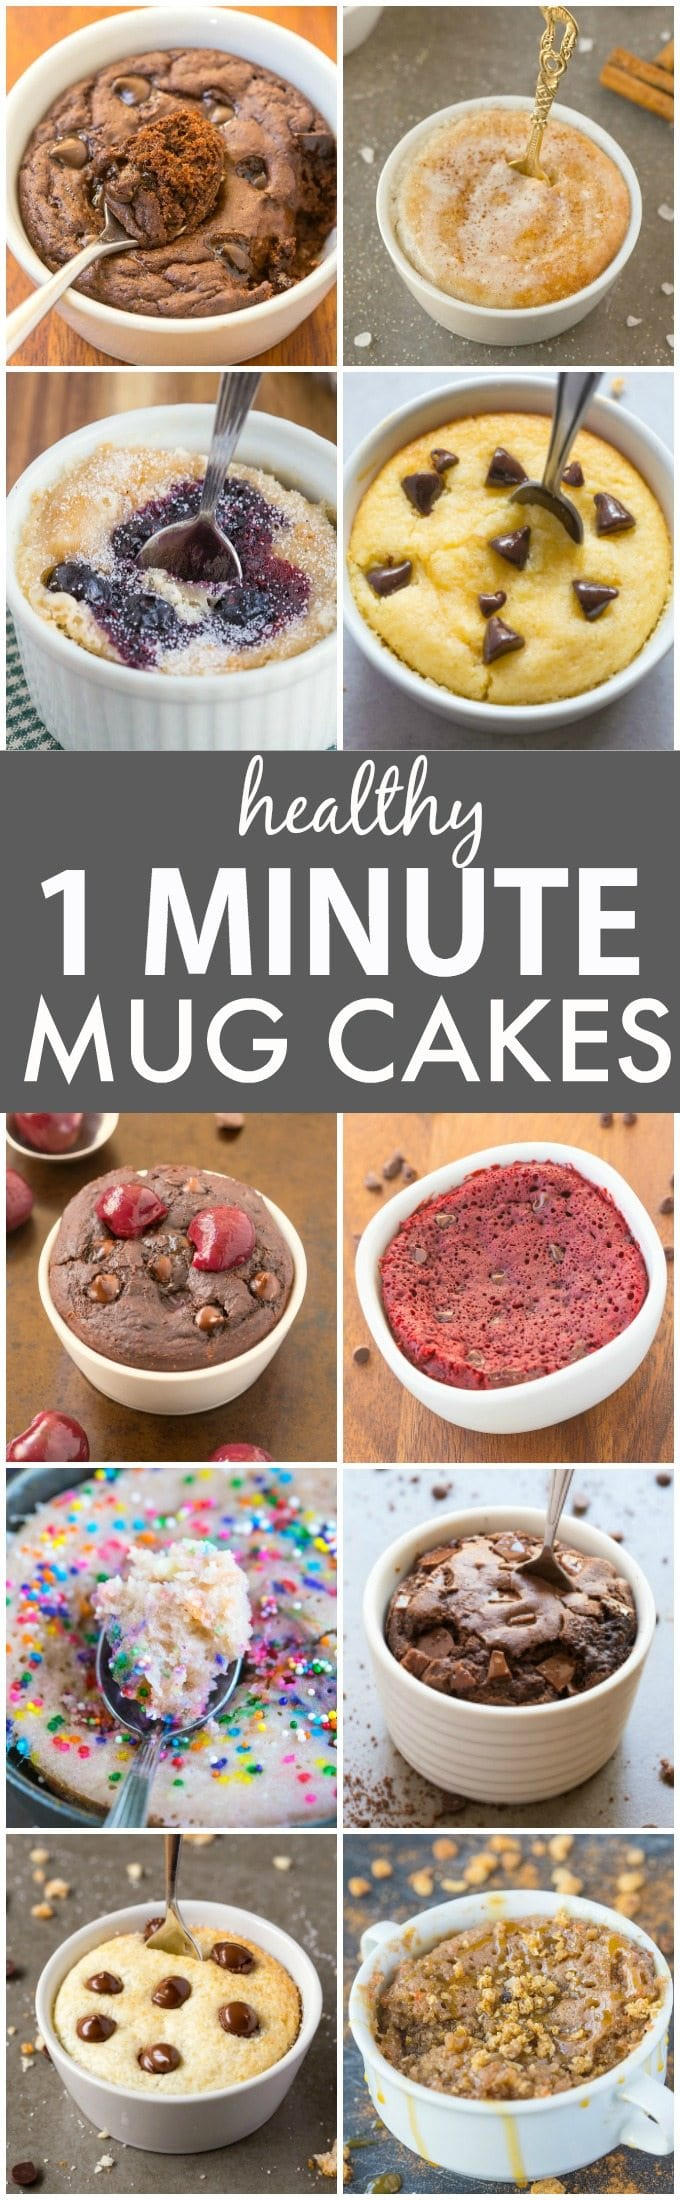 Clean Eating Healthy 1 Minute Mug Cakes, Brownies and Muffins (V, GF, Paleo)- Delicious, single-serve desserts and snacks which take less than a minute! Low carb, sugar free and more with OVEN options too! vegan, gluten free, paleo recipe- thebigmansworld.com